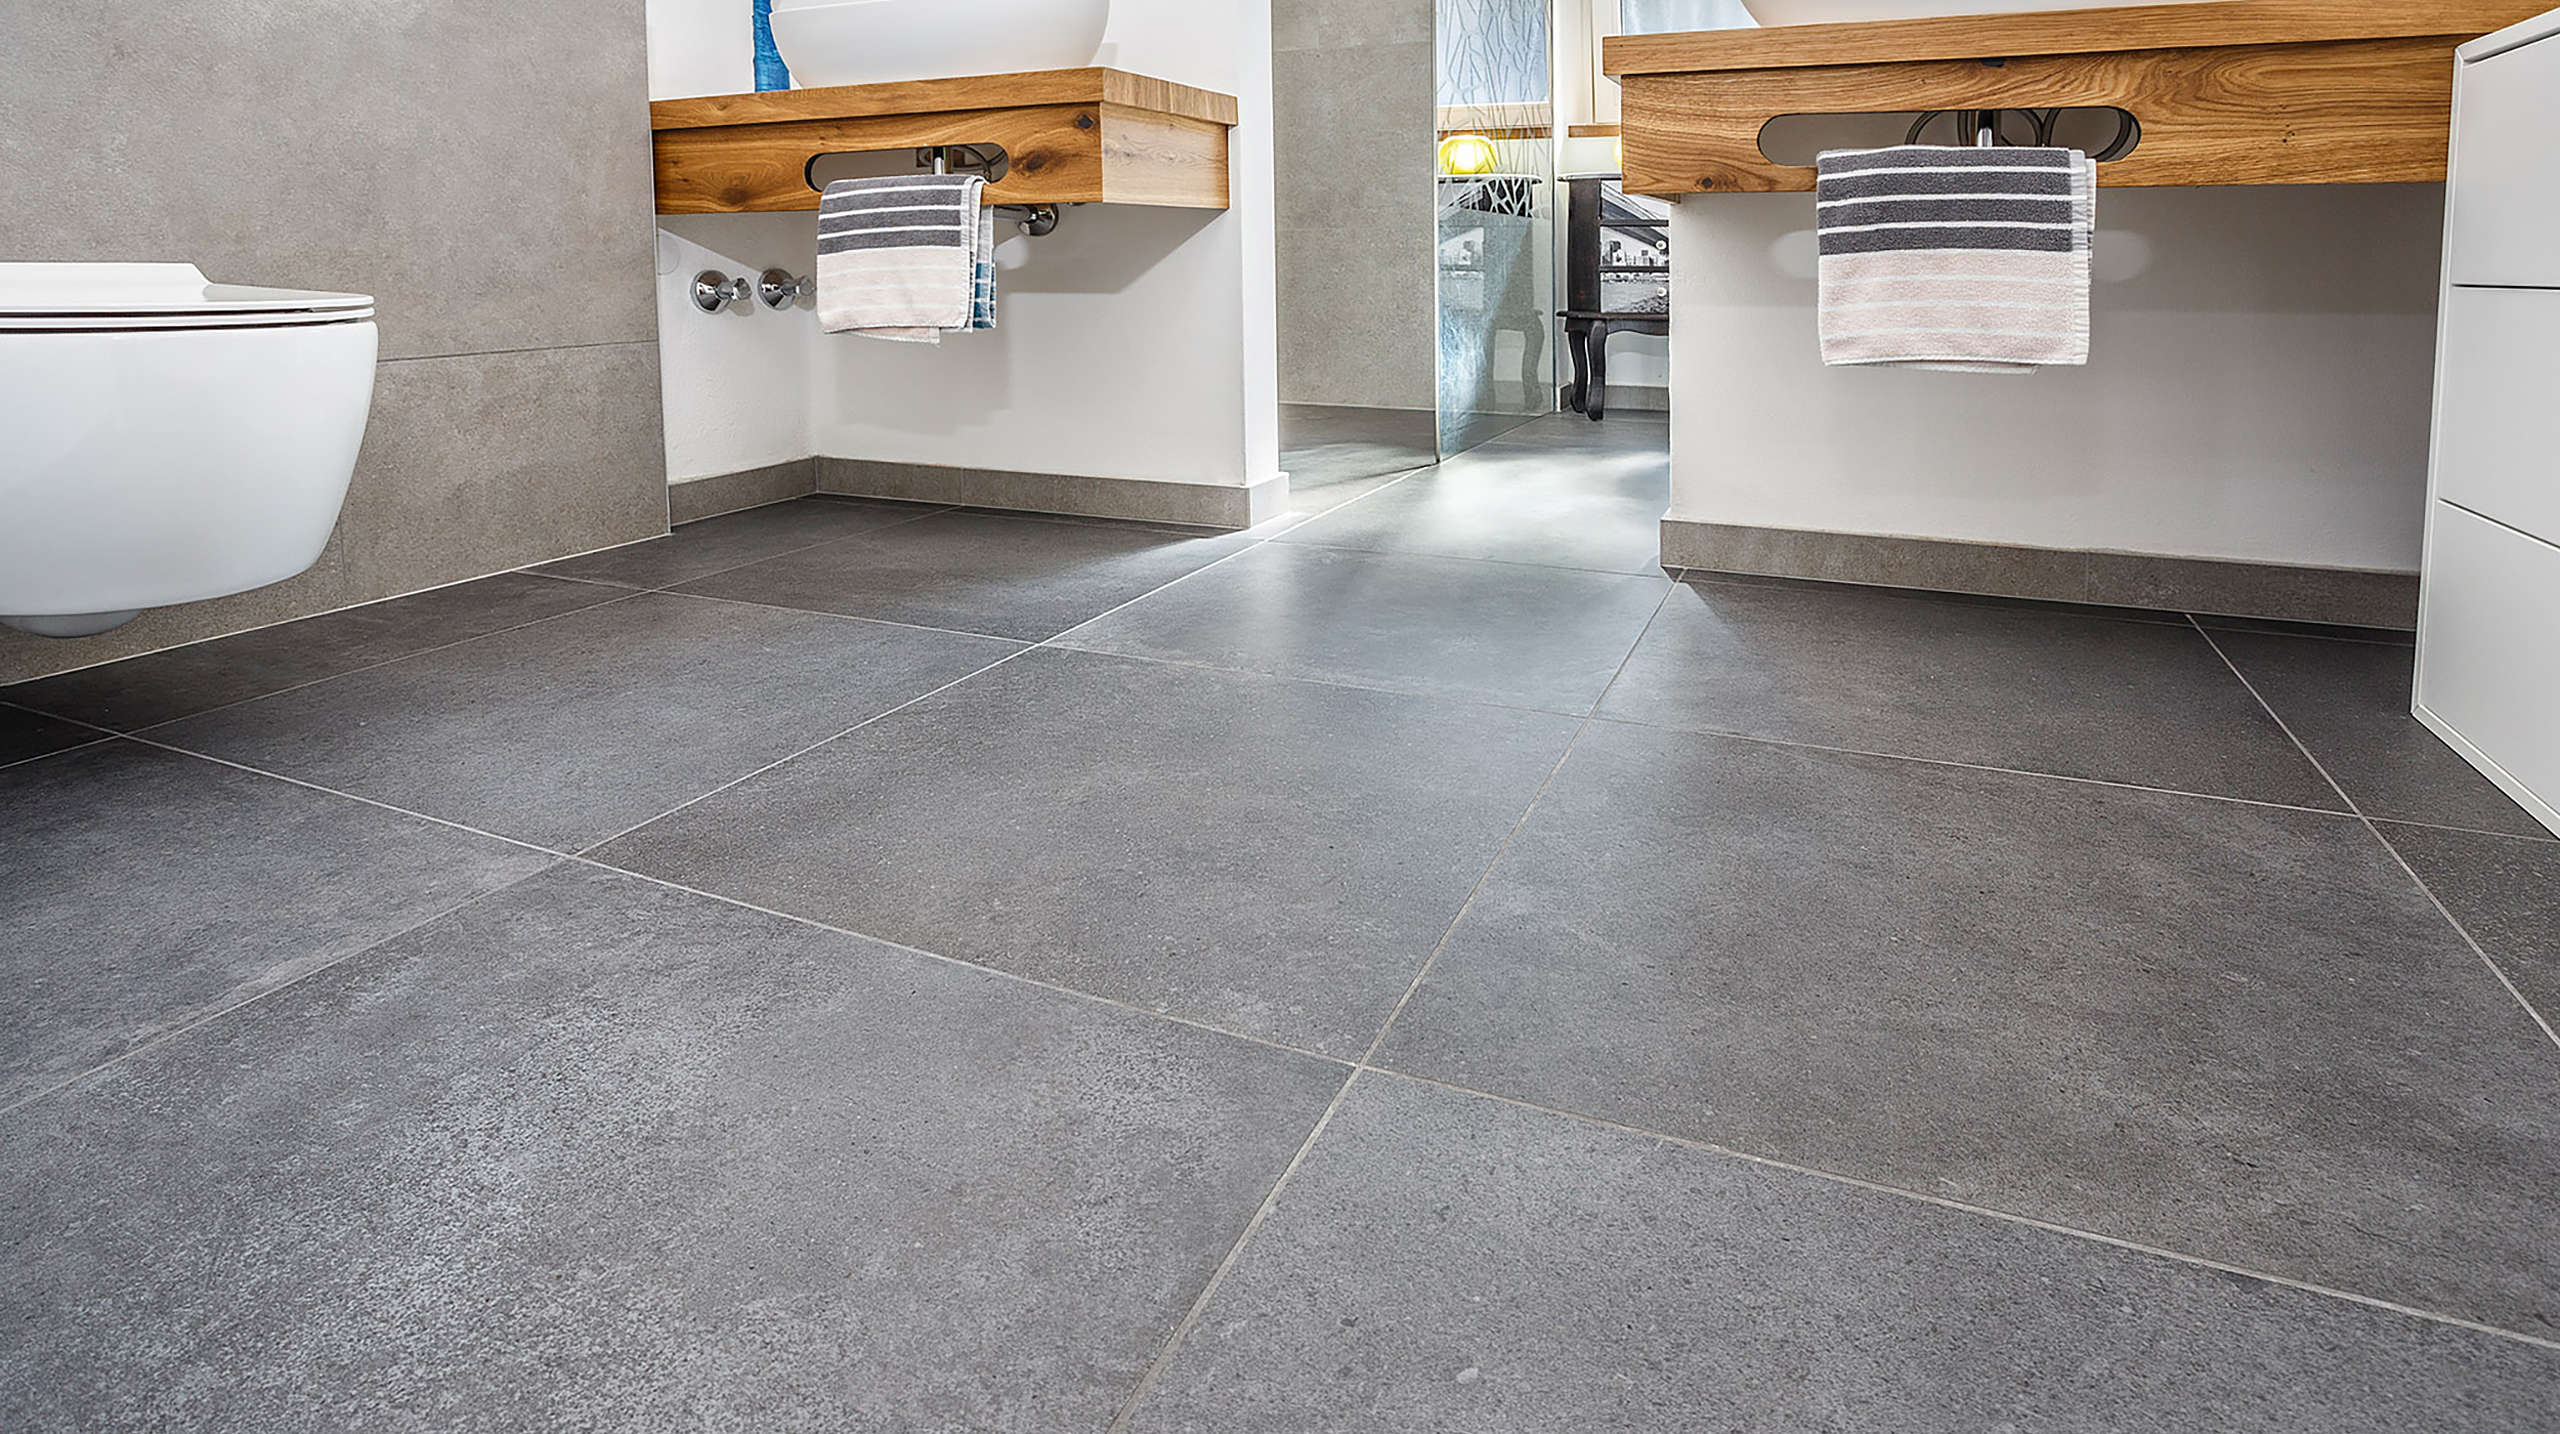 porcelain stoneware, indoor, flooring, floors, bathroom